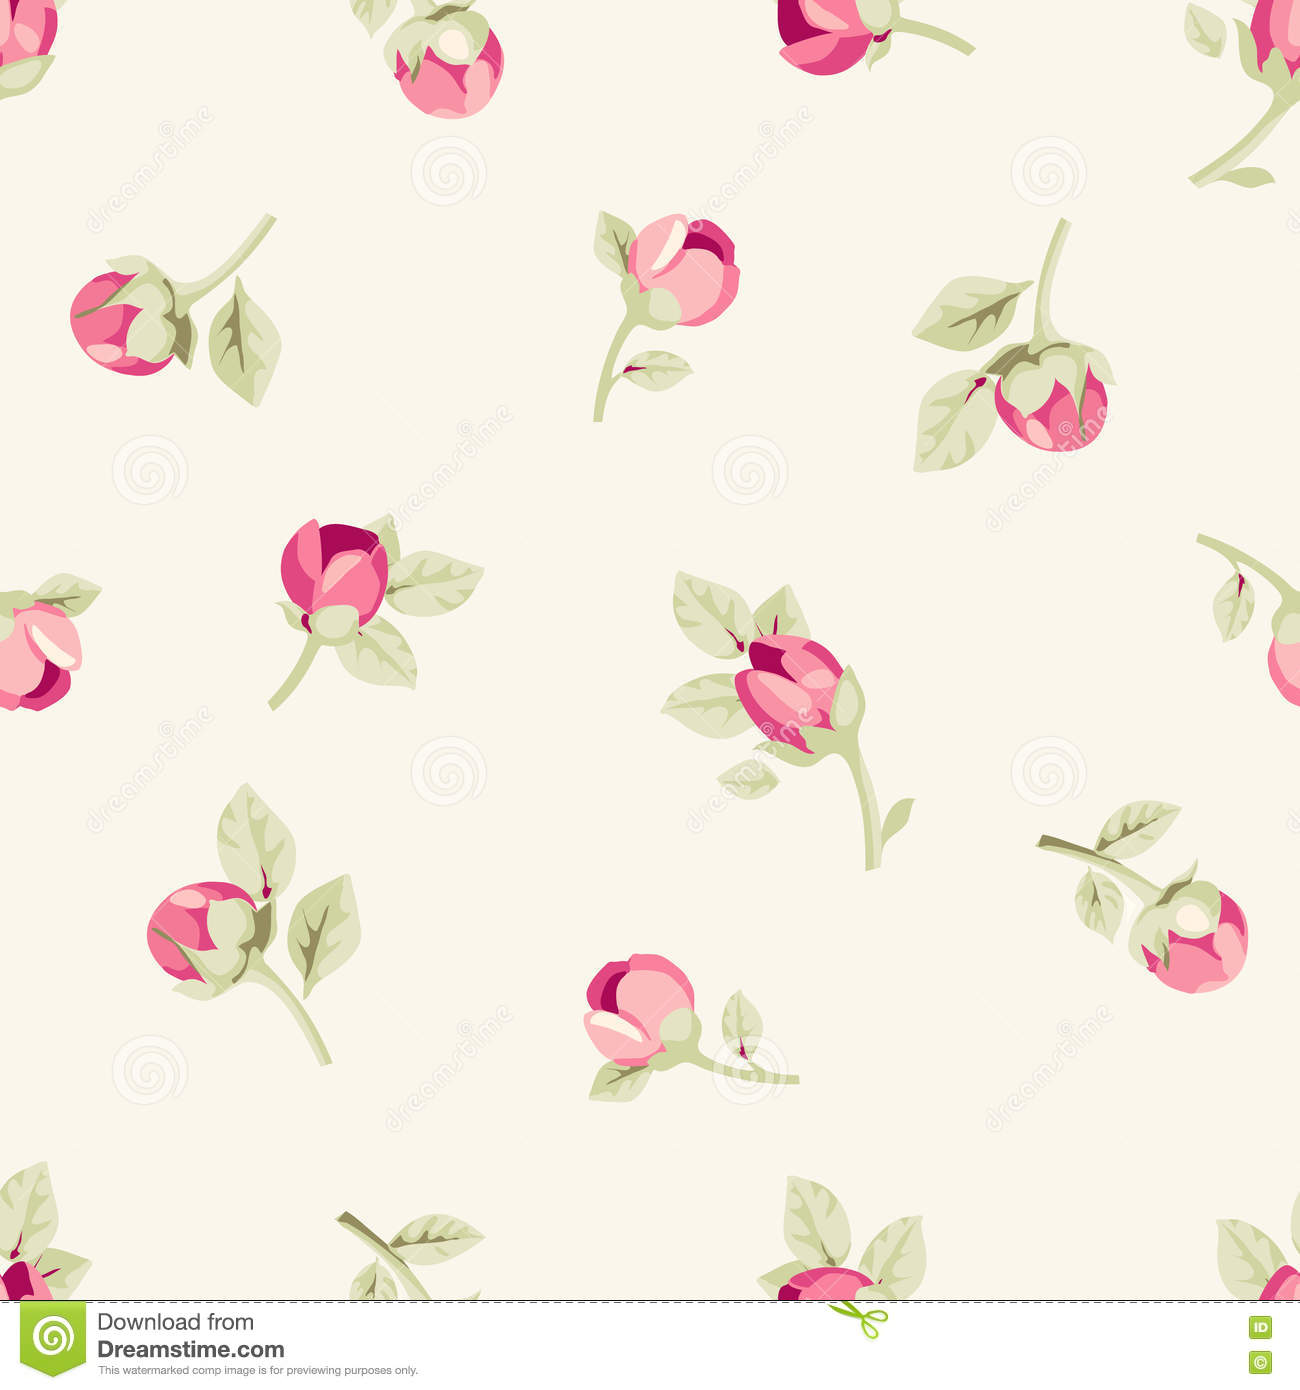 Seamless Floral Wallpaper Stock Vector Illustration Of Garden